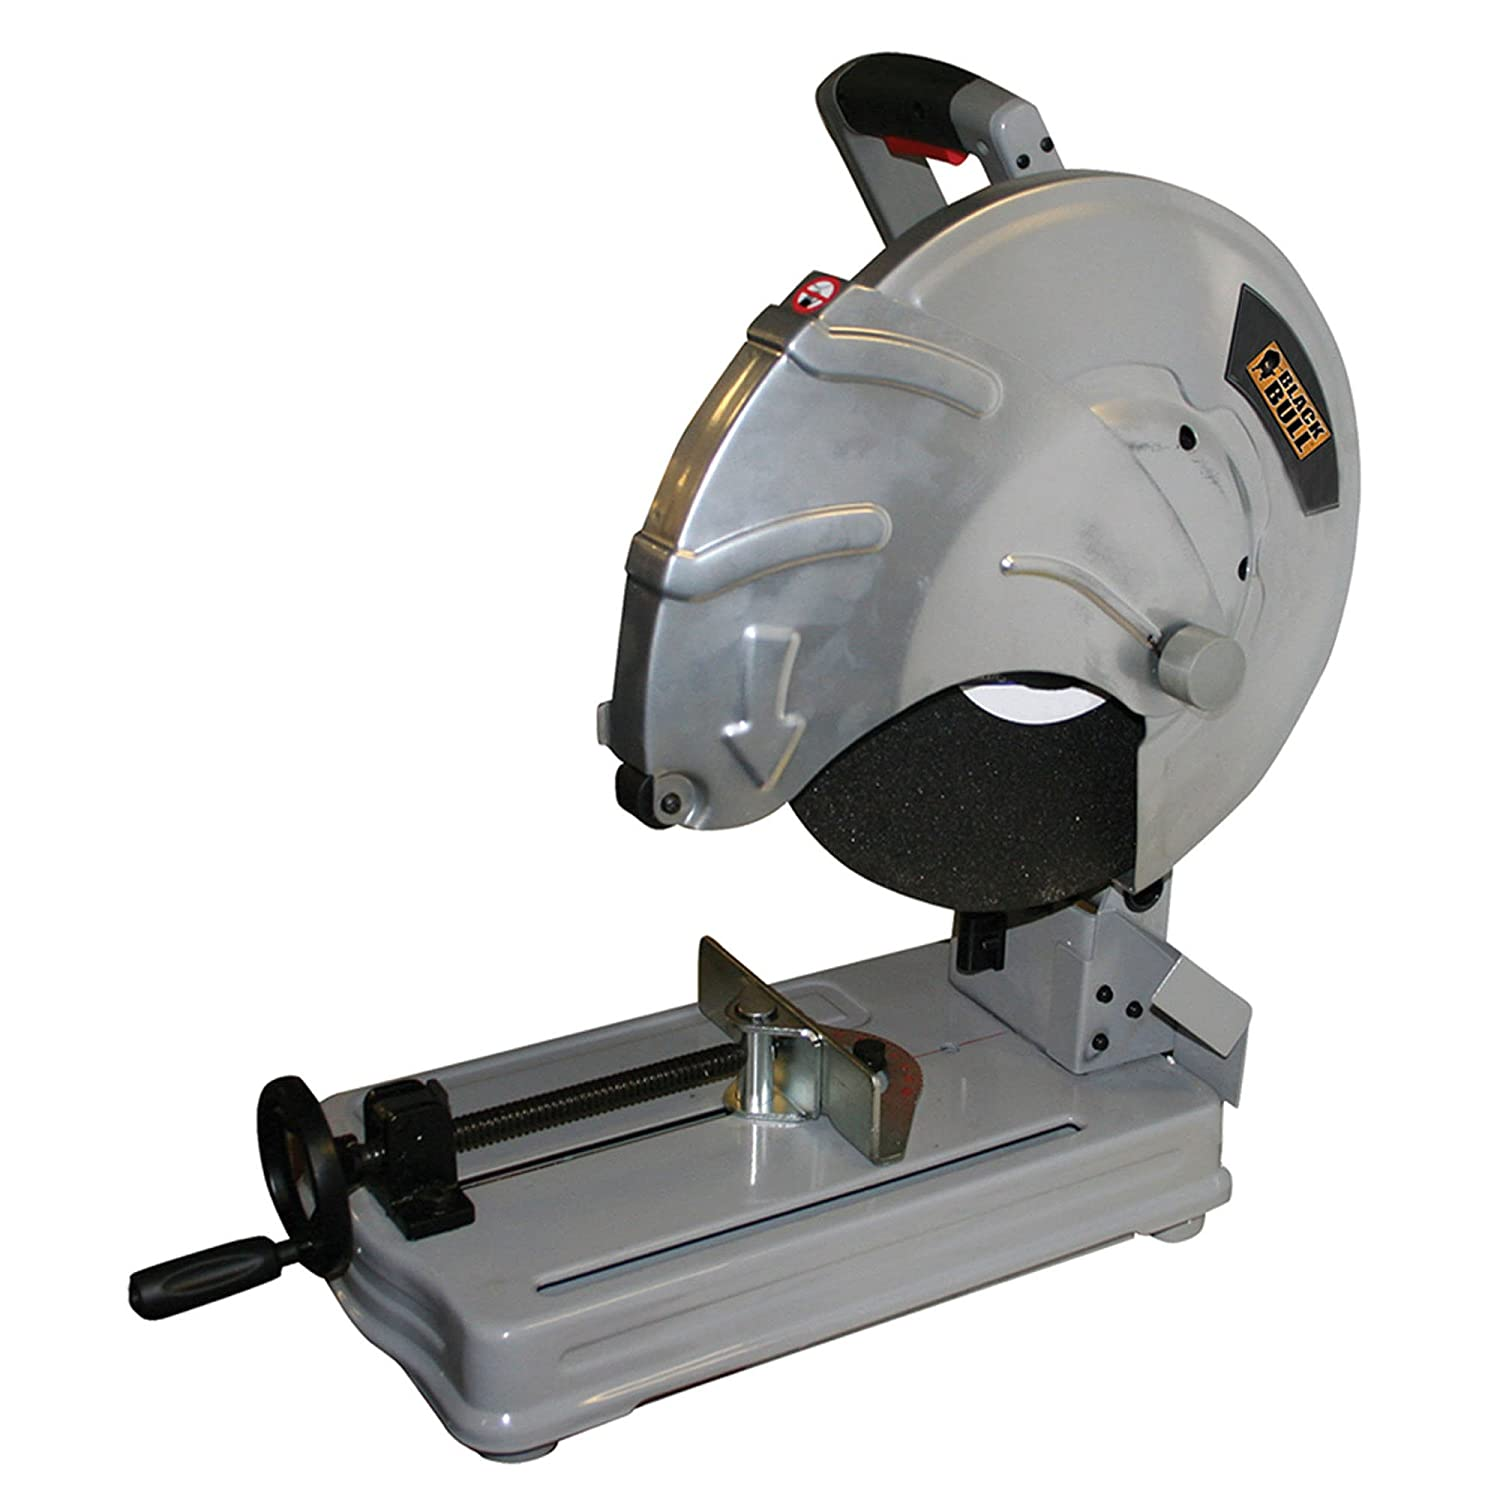 dry cut metal saw. black bull cos14 14-inch cut off saw - power metal cutting saws amazon.com dry